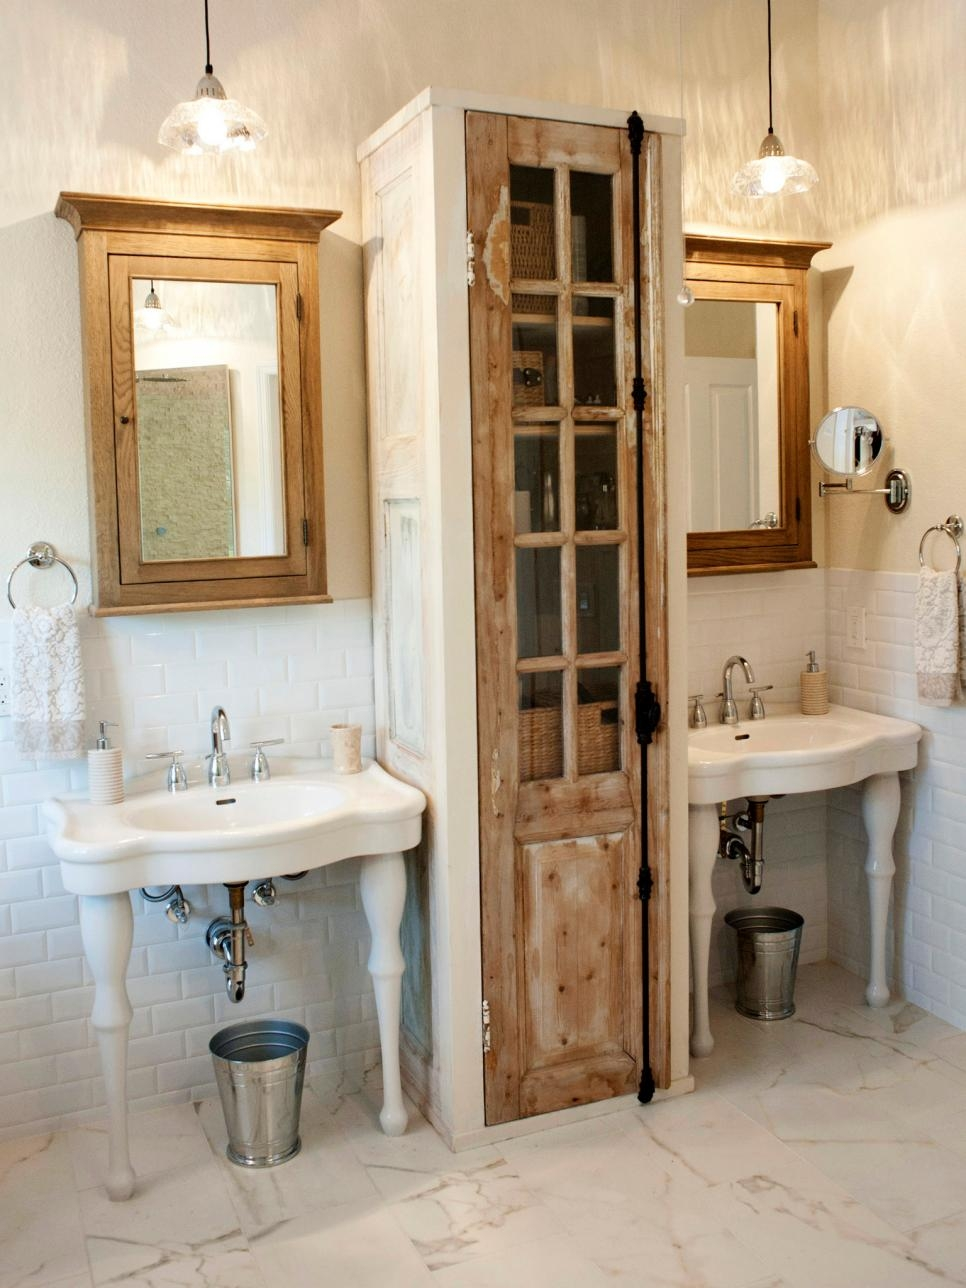 Vintage Bathroom Mirror With Shelf Creative Bathroom Decoration Throughout Vintage Style Bathroom Mirrors (Image 11 of 15)